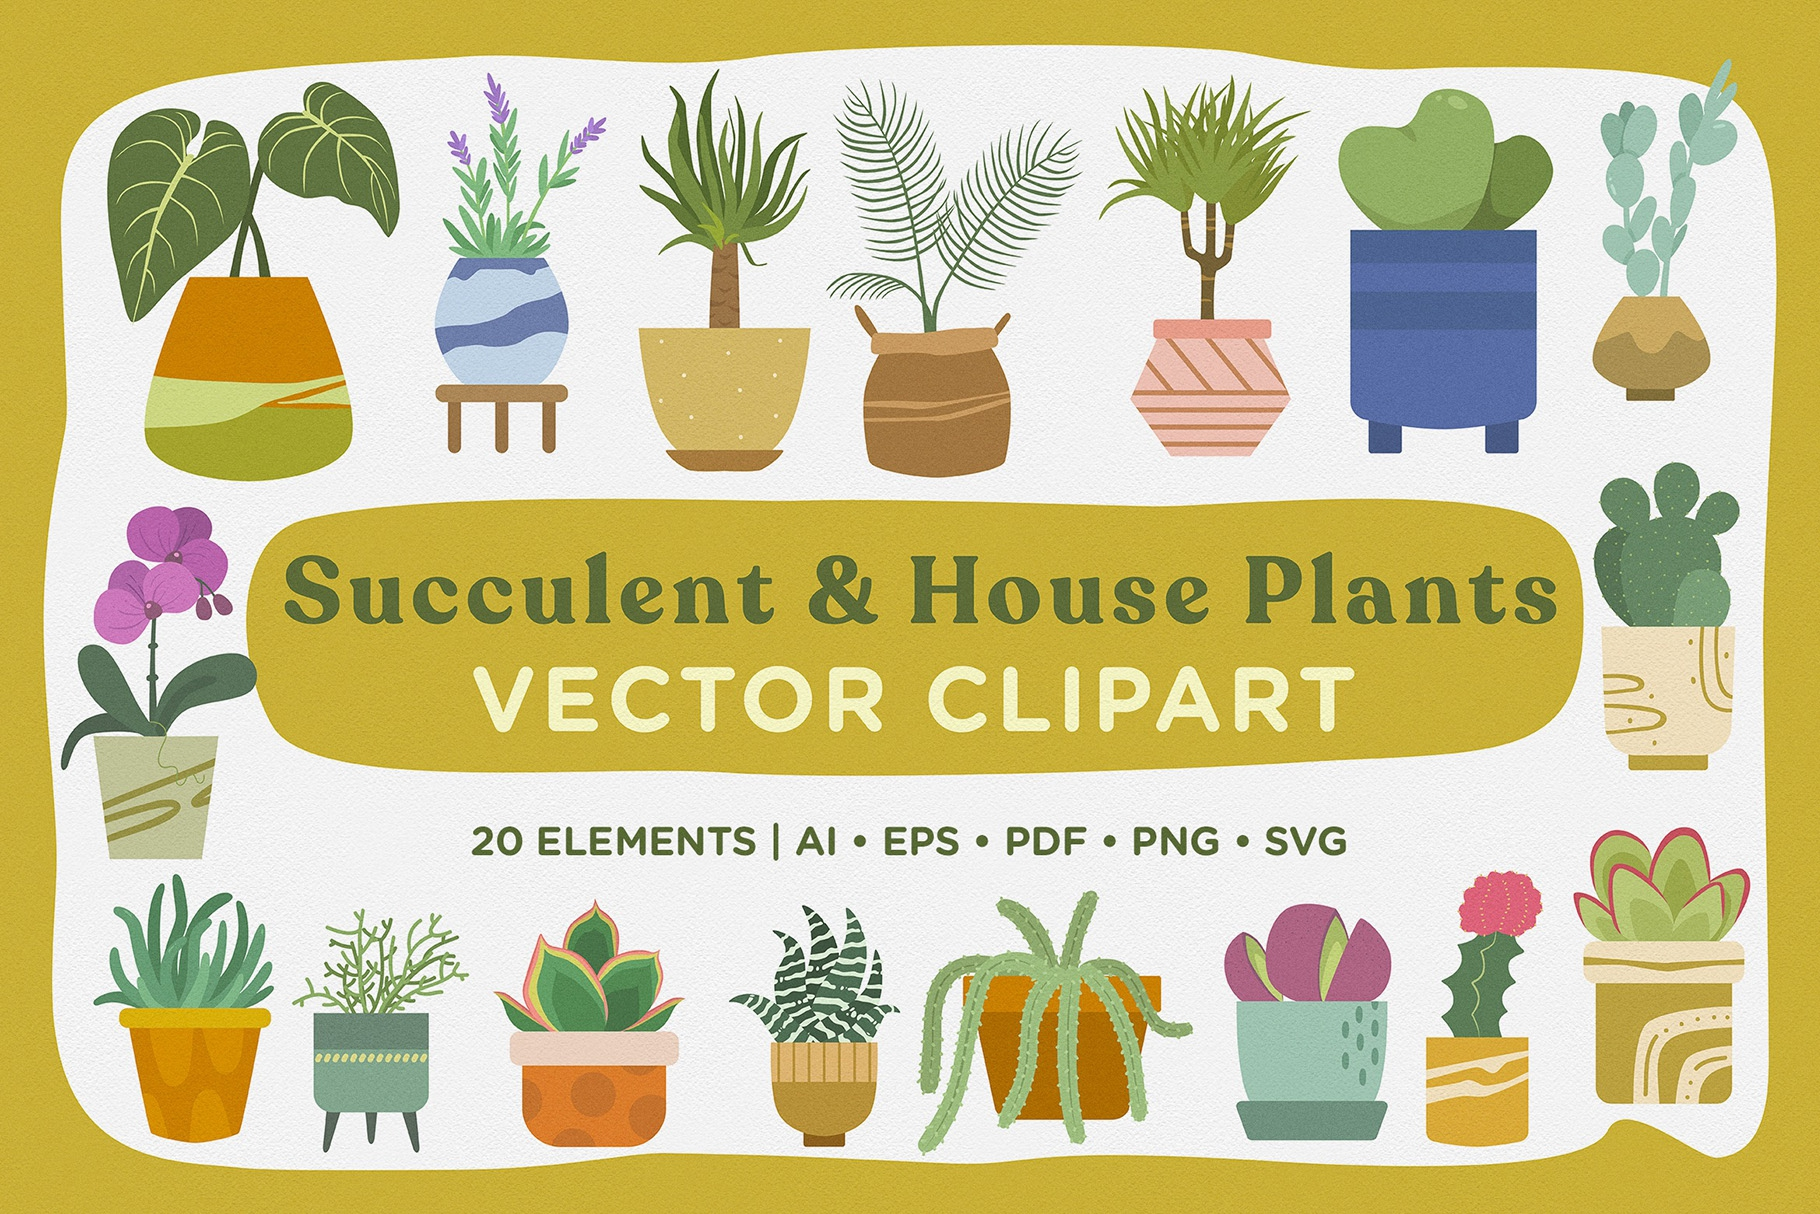 Hanging House Plants And Flowers In Pots. Royalty Free Cliparts, Vectors,  And Stock Illustration. Image 98517429.